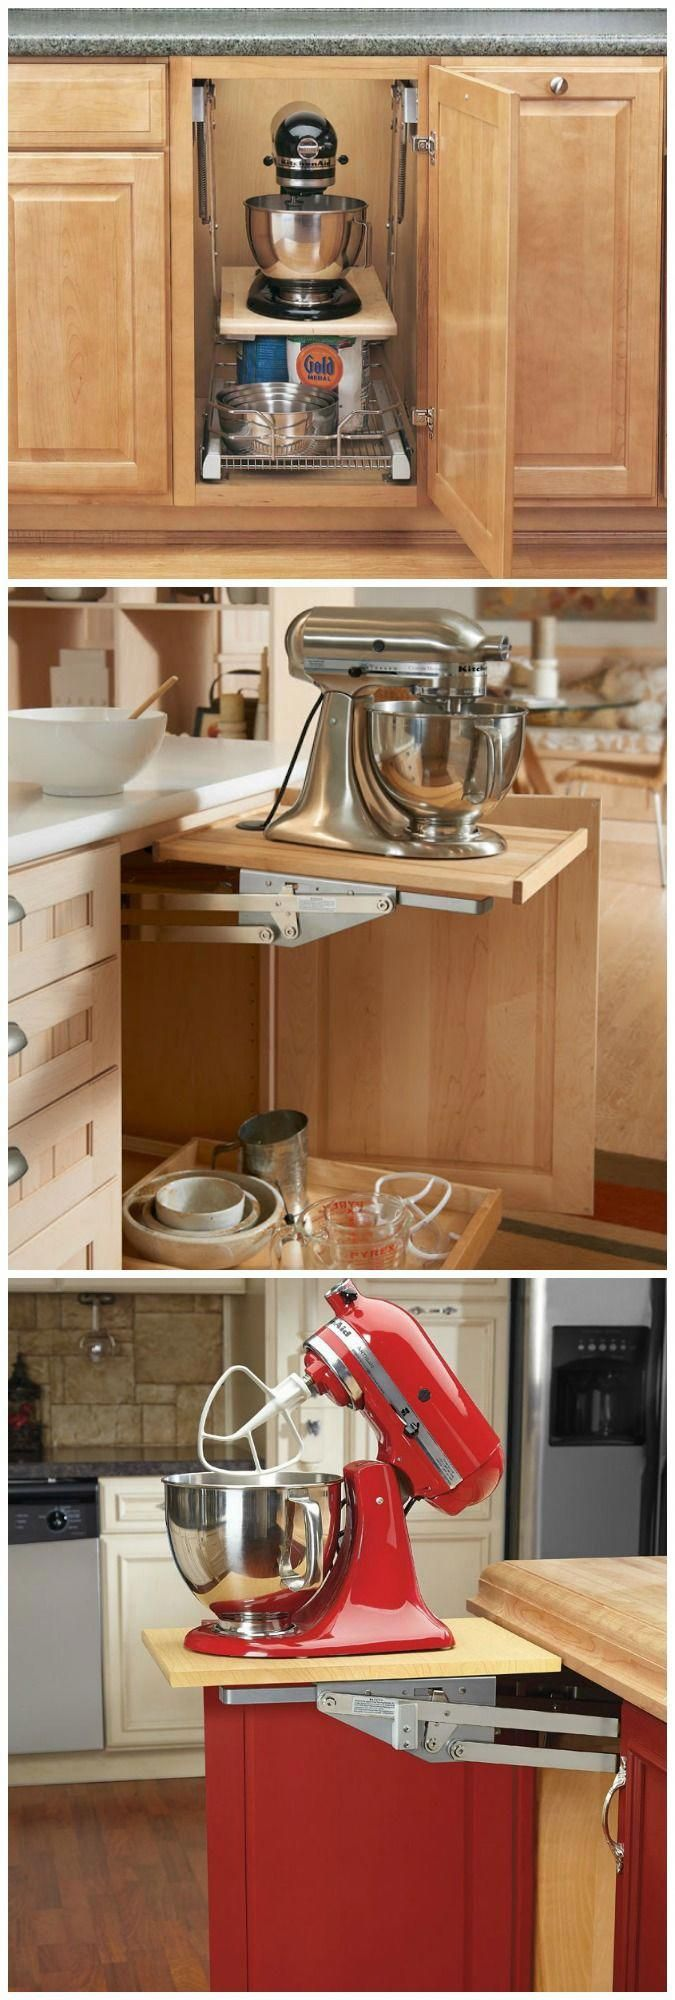 With the Rev-A-Shelf Appliance Lift it only takes seconds to raise your heavy-duty mixer and other heavy appliances out of its cabinet to counter-top level. #kitchenremodeling #countertop